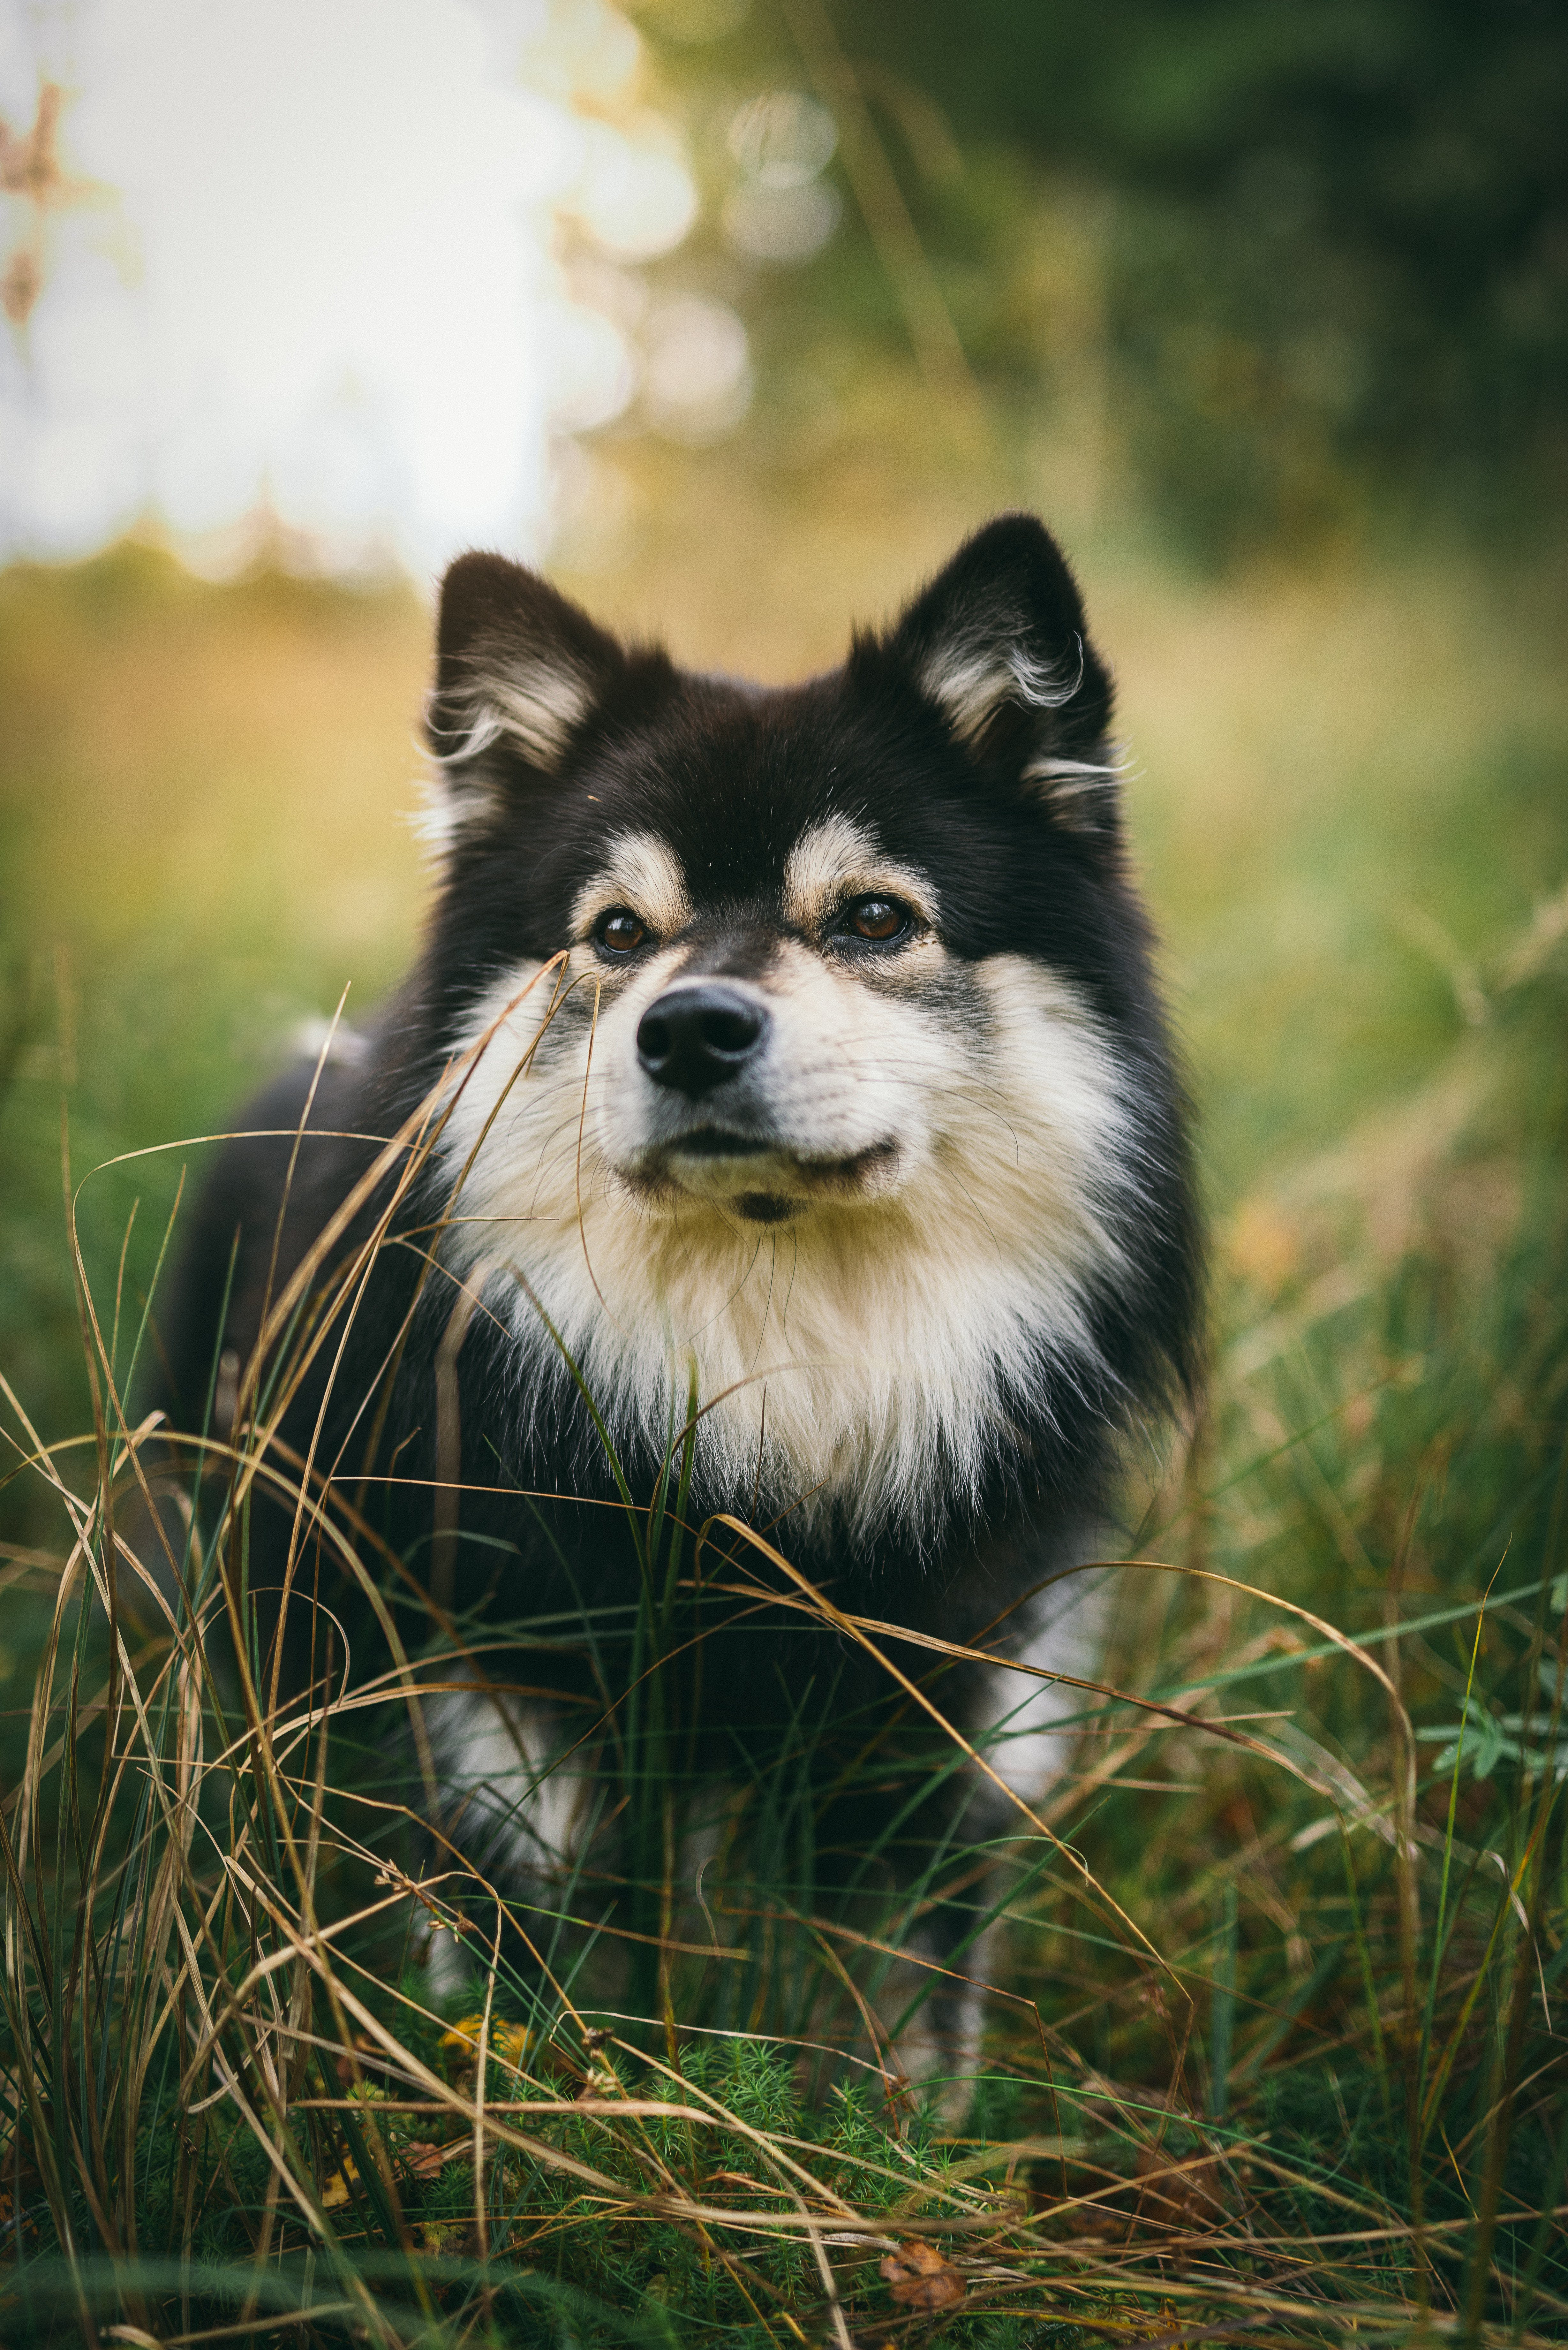 Black and White Finnish Lapphund Standing on Tall Grasses